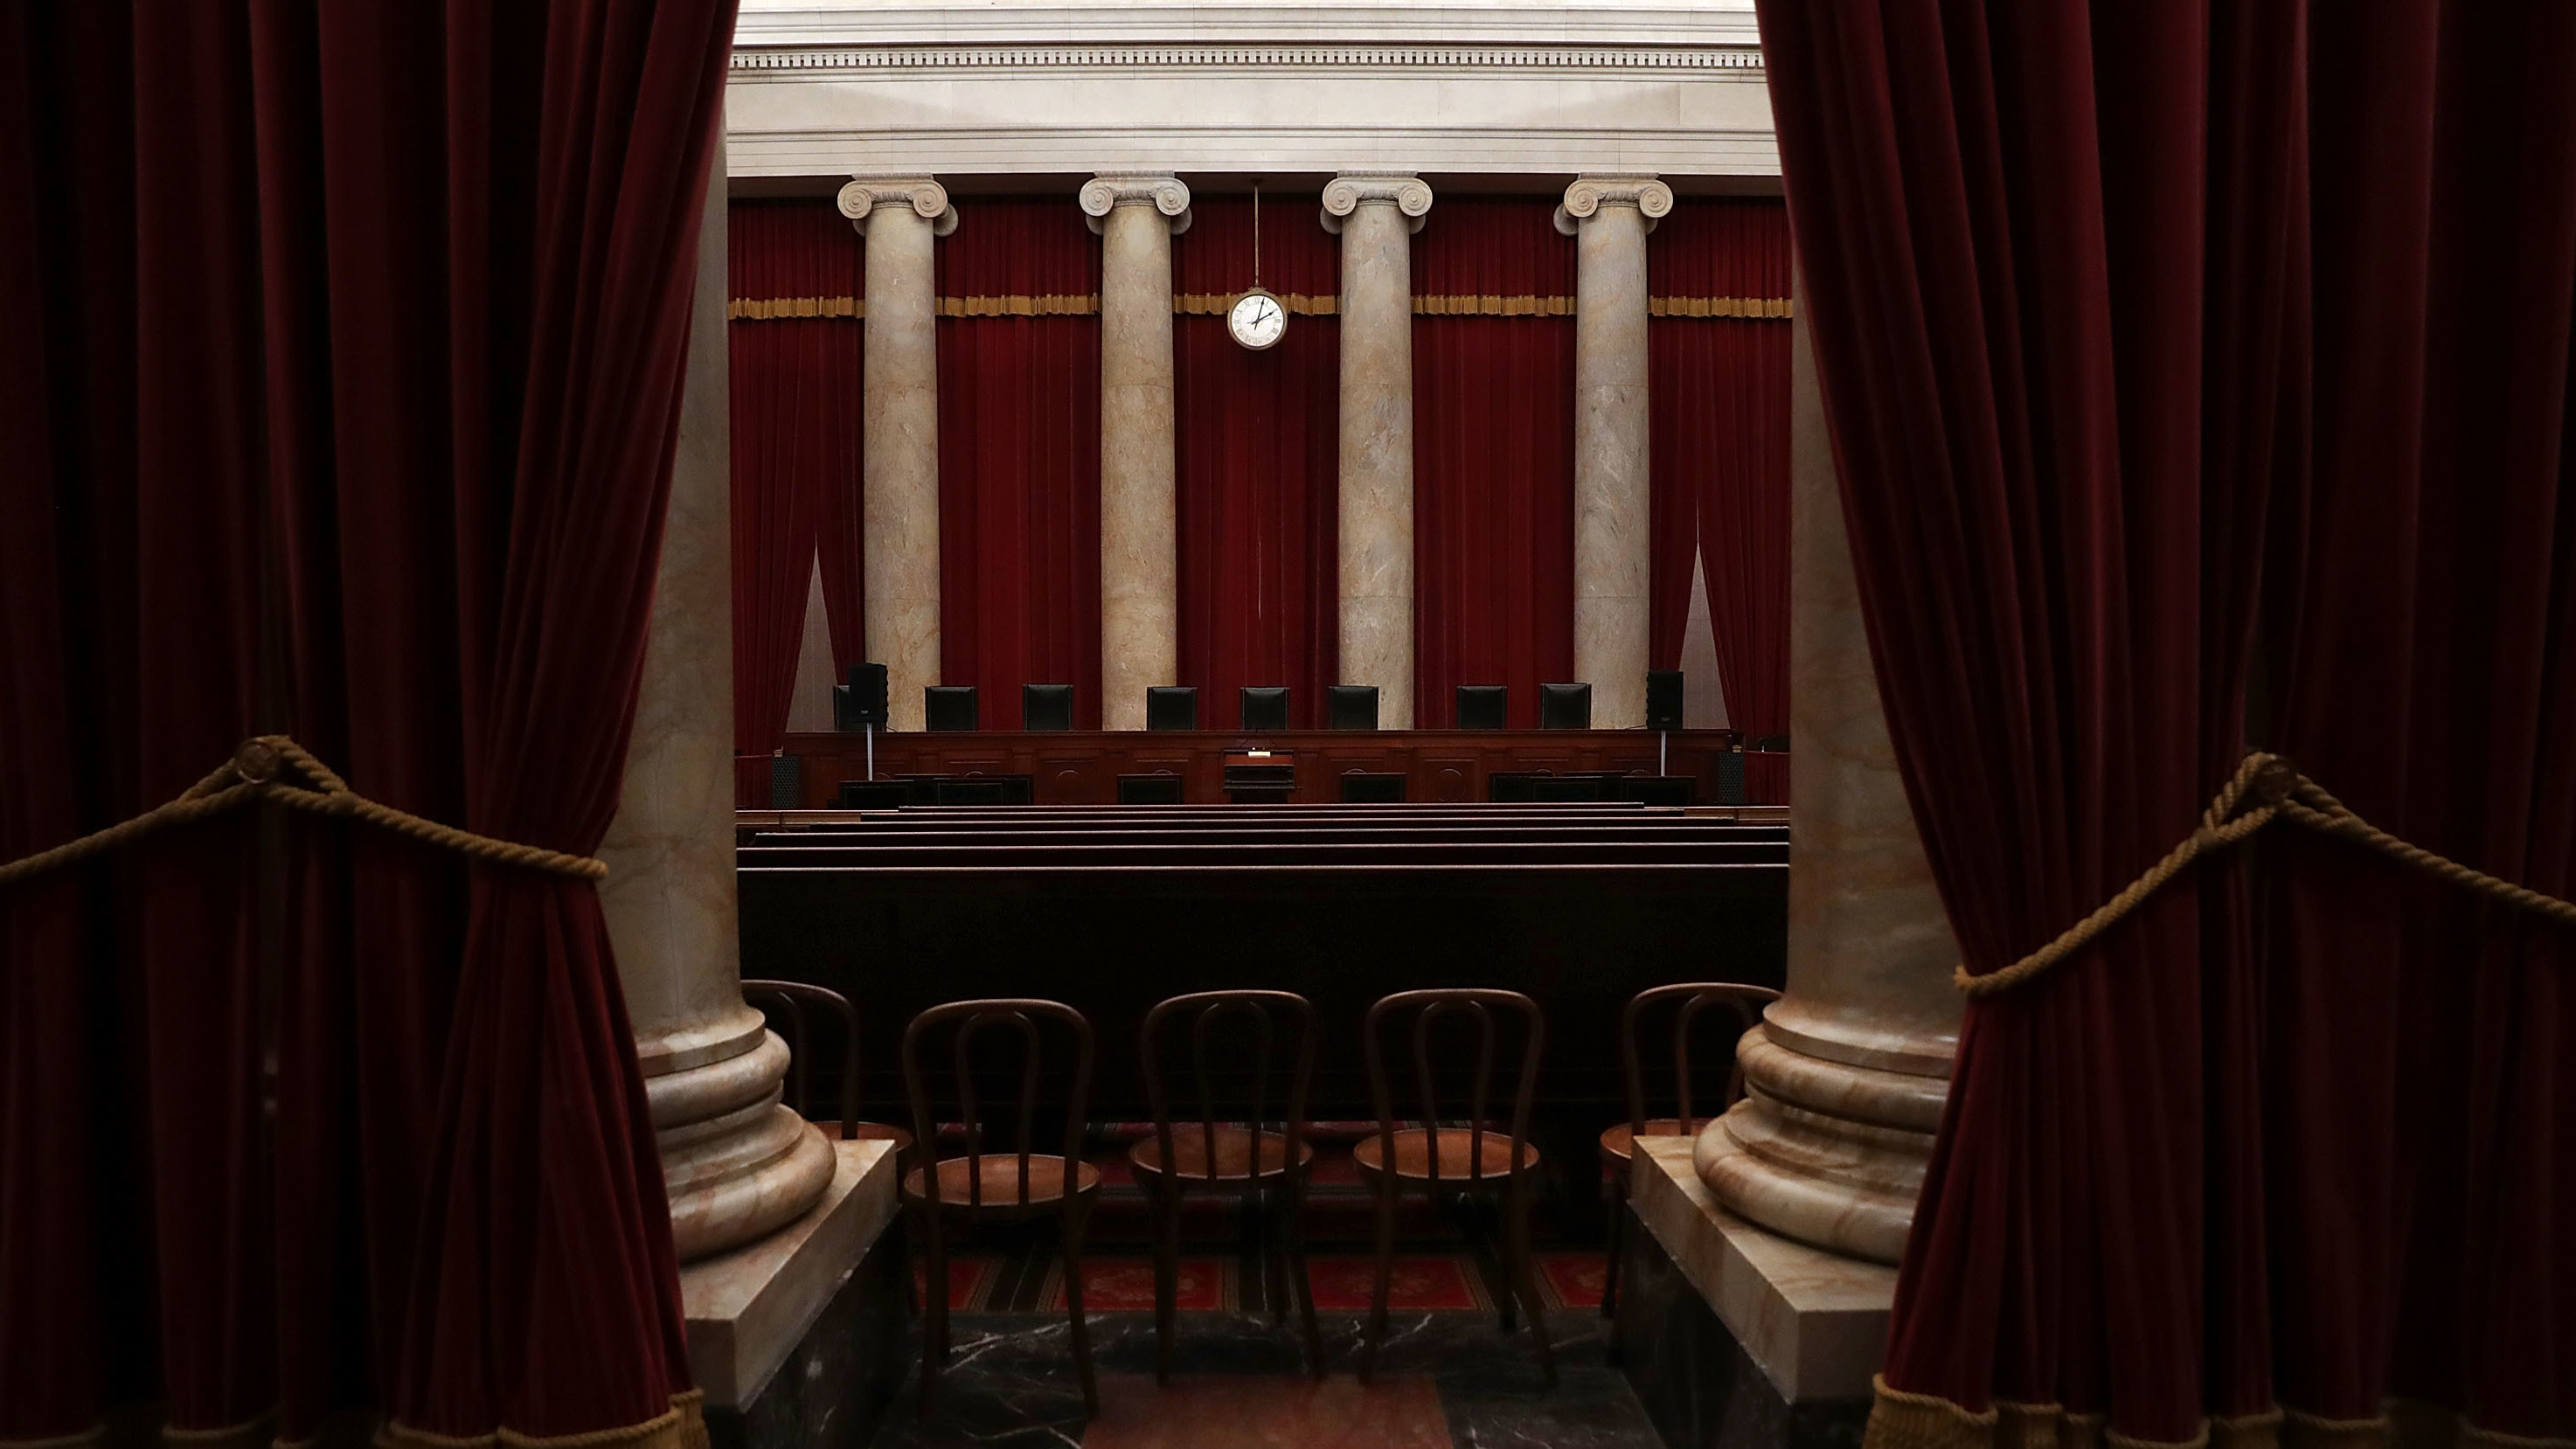 The courtroom of the U.S. Supreme Court seen ahead of the start of the term. (Photo by Alex Wong/Getty Images)